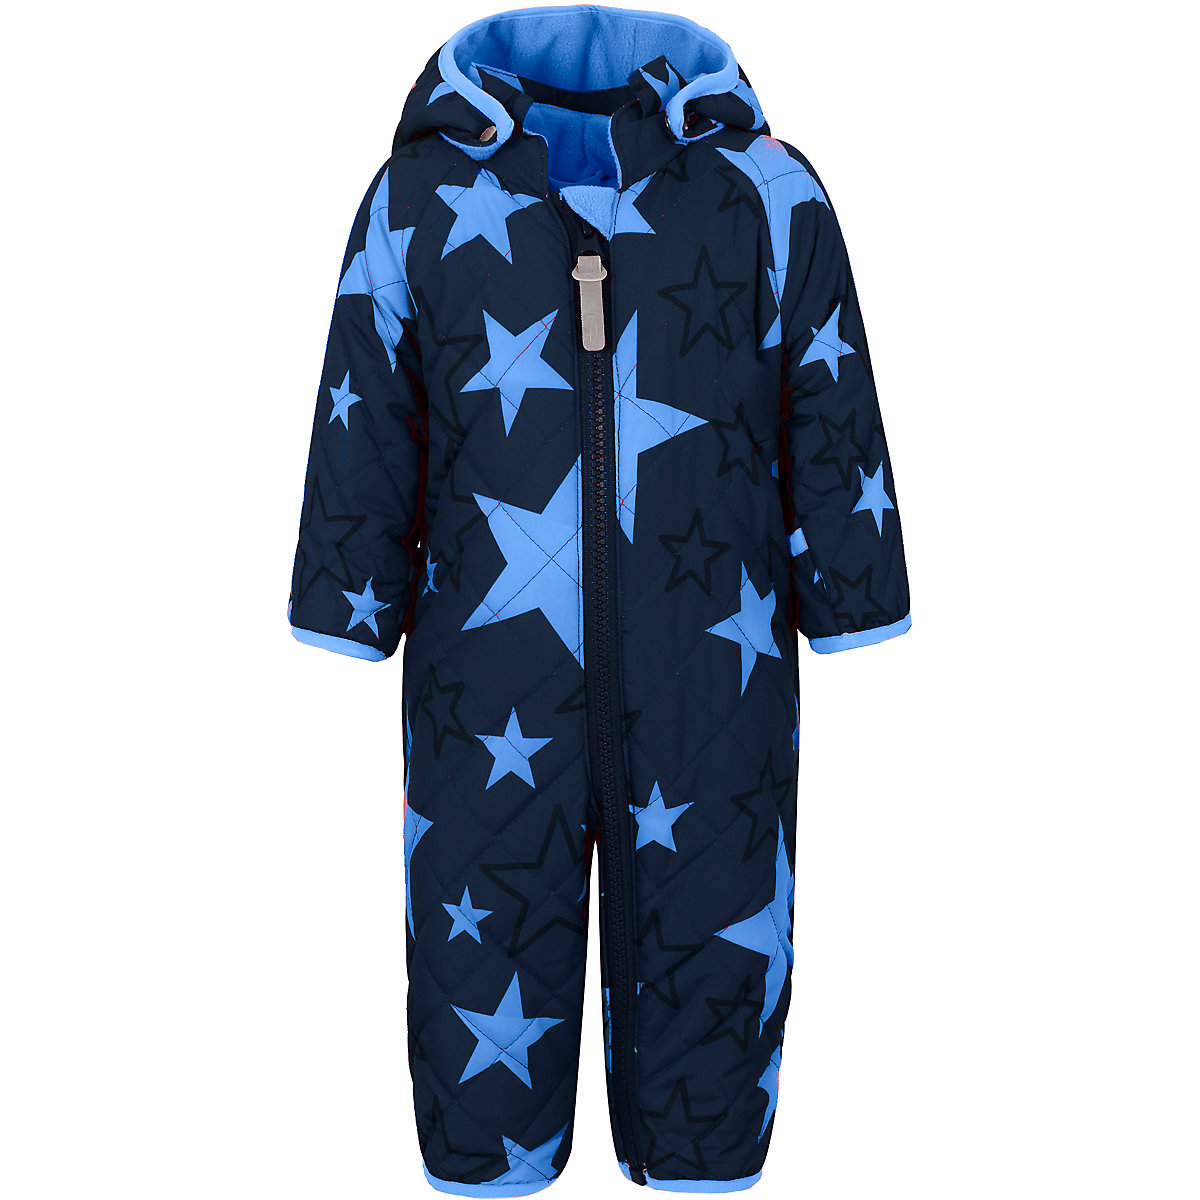 Overalls TICKET TO HEAVEN for boys 8305634 Baby Rompers Jumpsuit Children clothes Kids overalls ticket to heaven for girls and boys 8954256 baby rompers jumpsuit children clothes kids